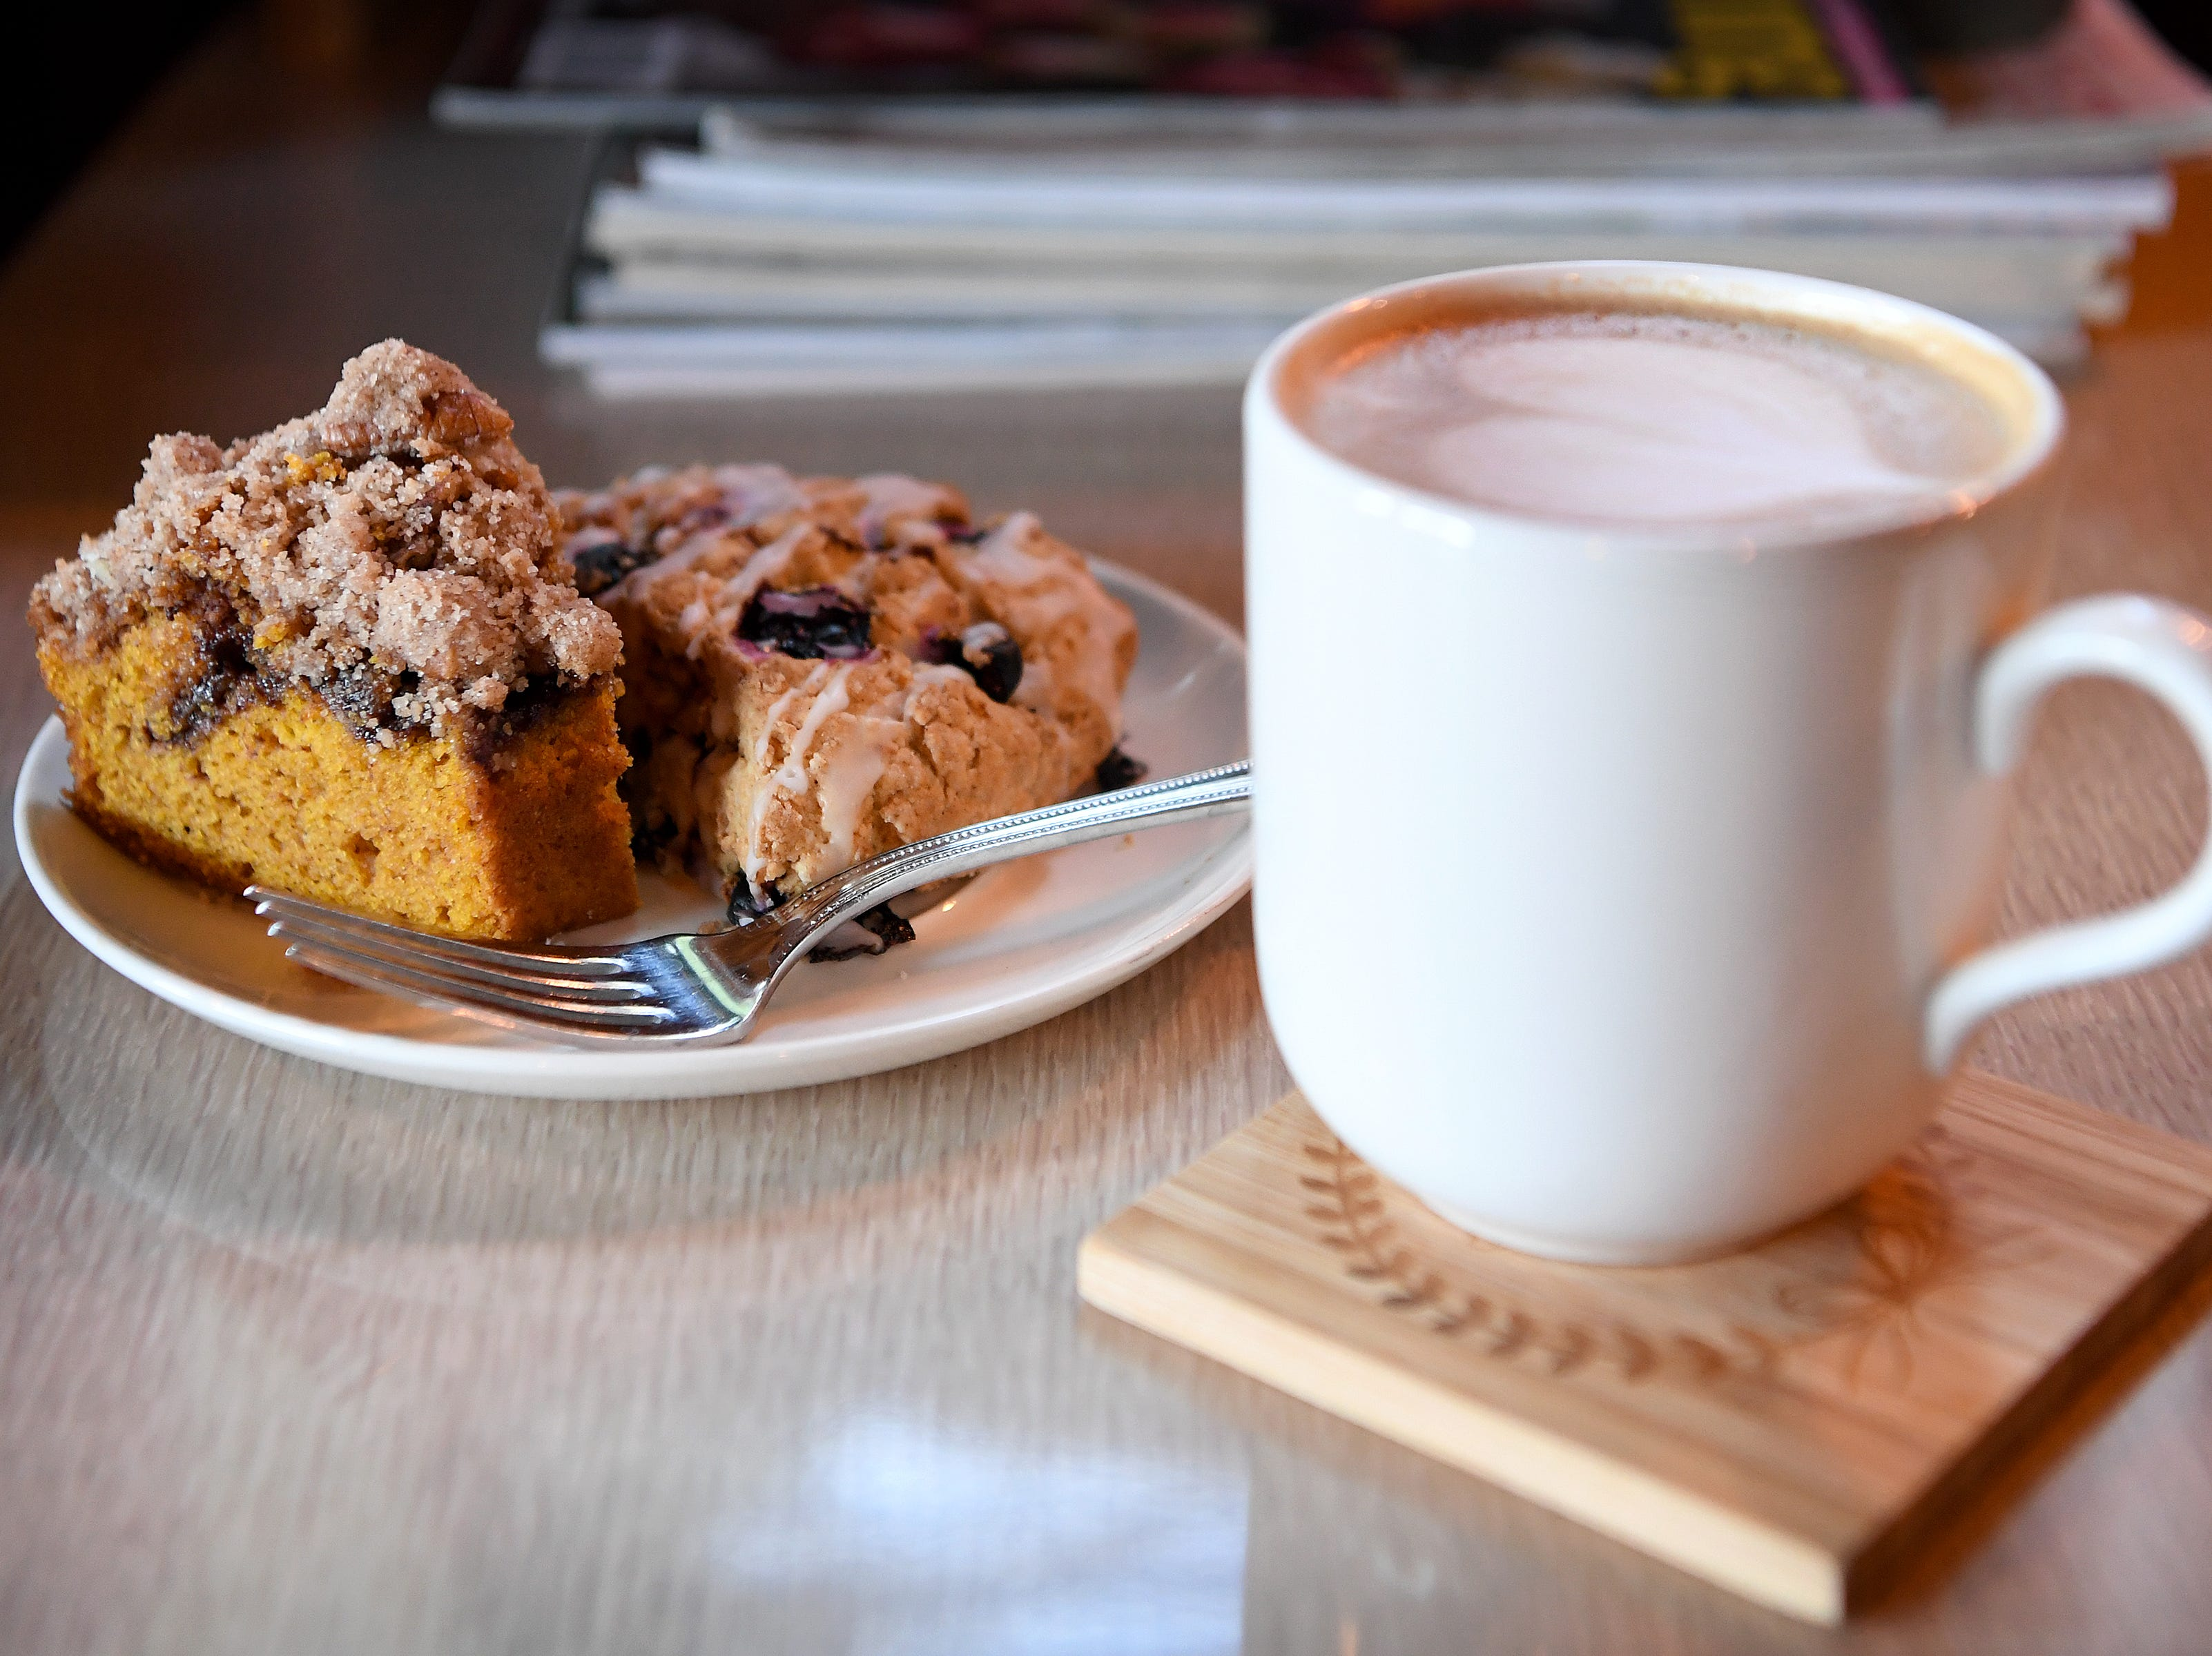 A latte is accompanied by house-made pumpkin chocolate chip coffee cake and a vegan scone at the Beehive Coffee Bar in Arden.